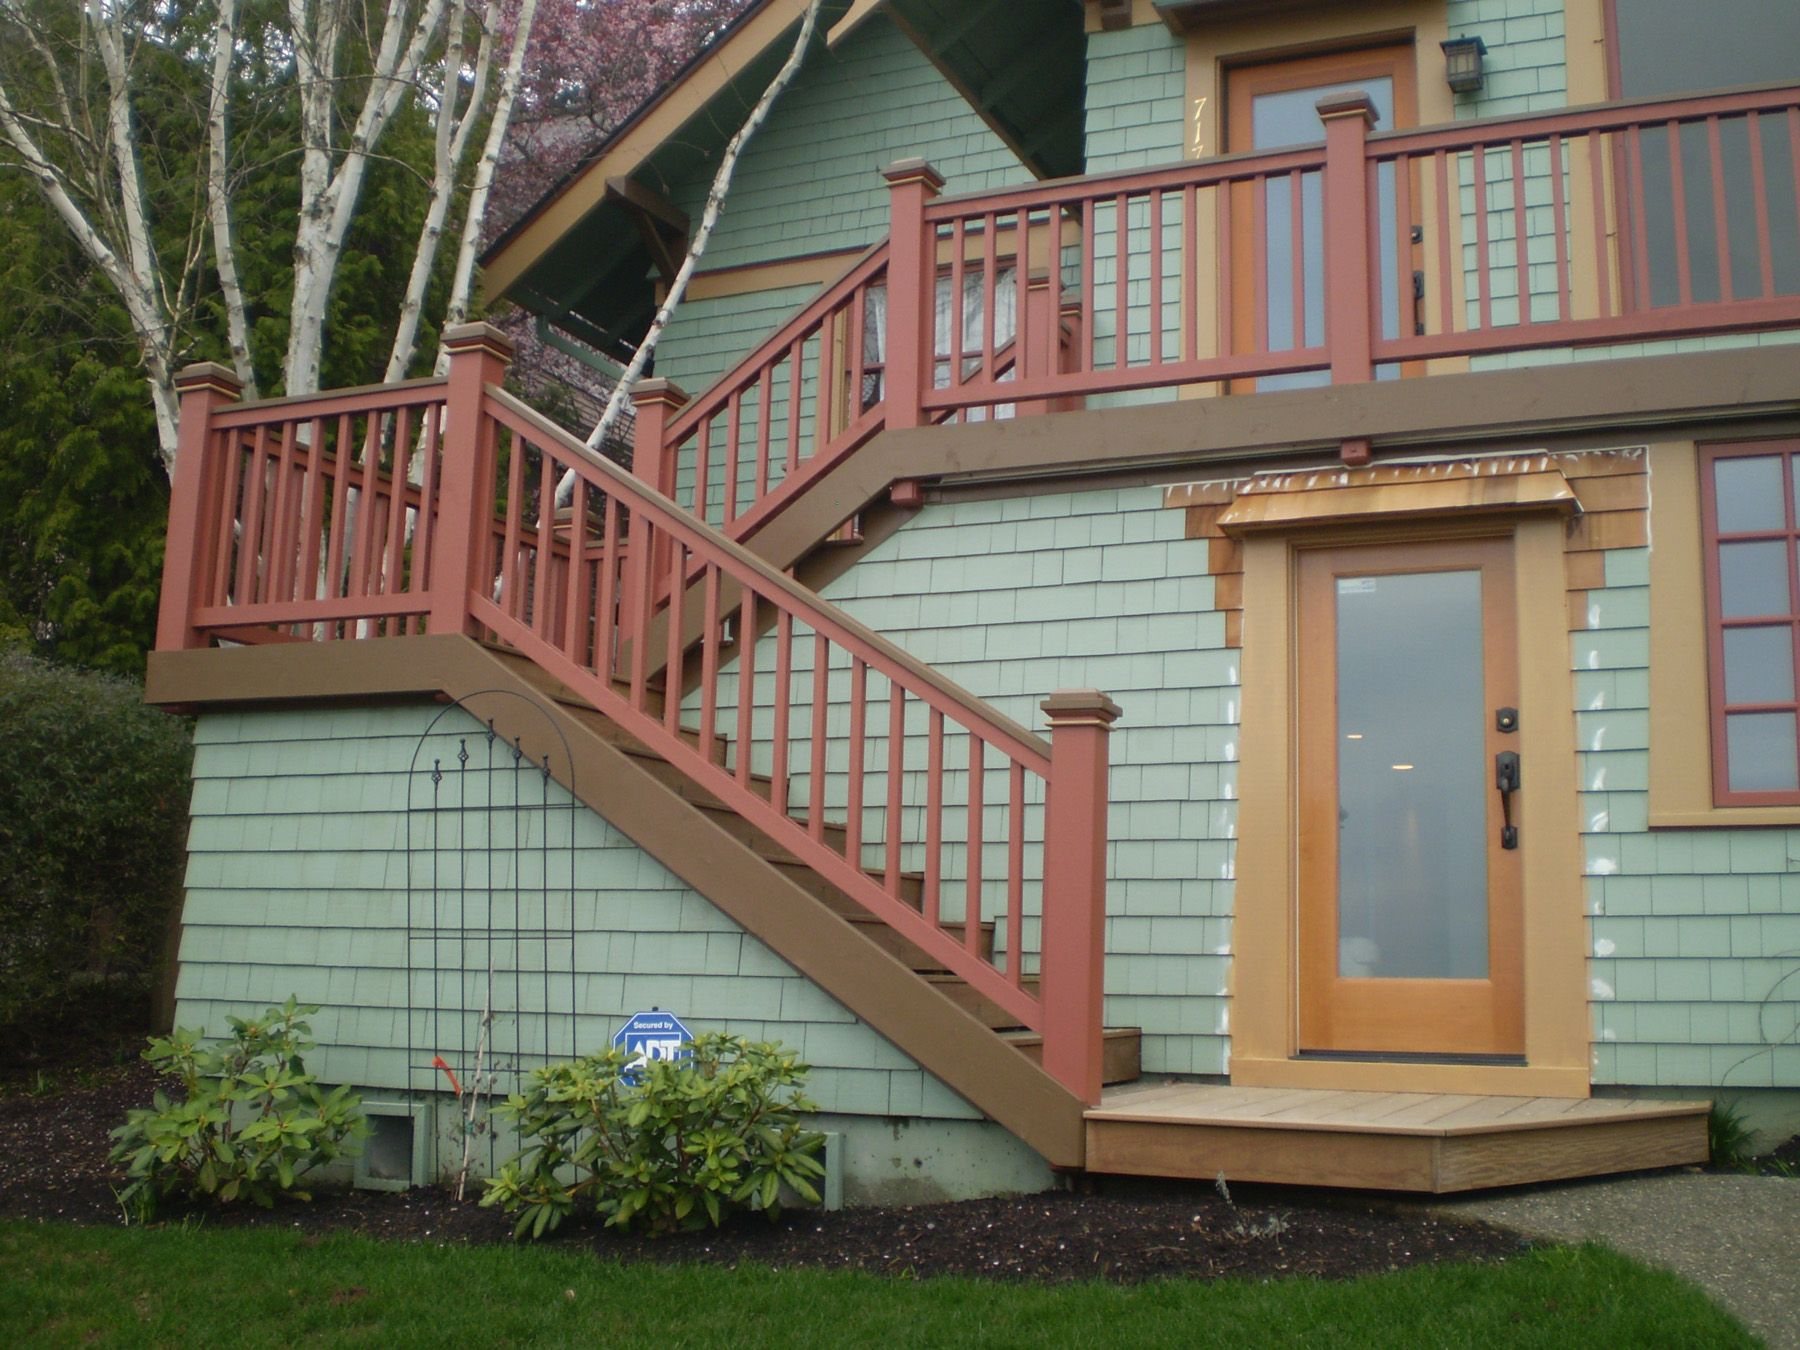 Steps porch stairs stairs paint exterior wood stairs painted exterior - Best 20 Outside Stairs Ideas On Pinterest Stairs House Stairs And Interior Stairs